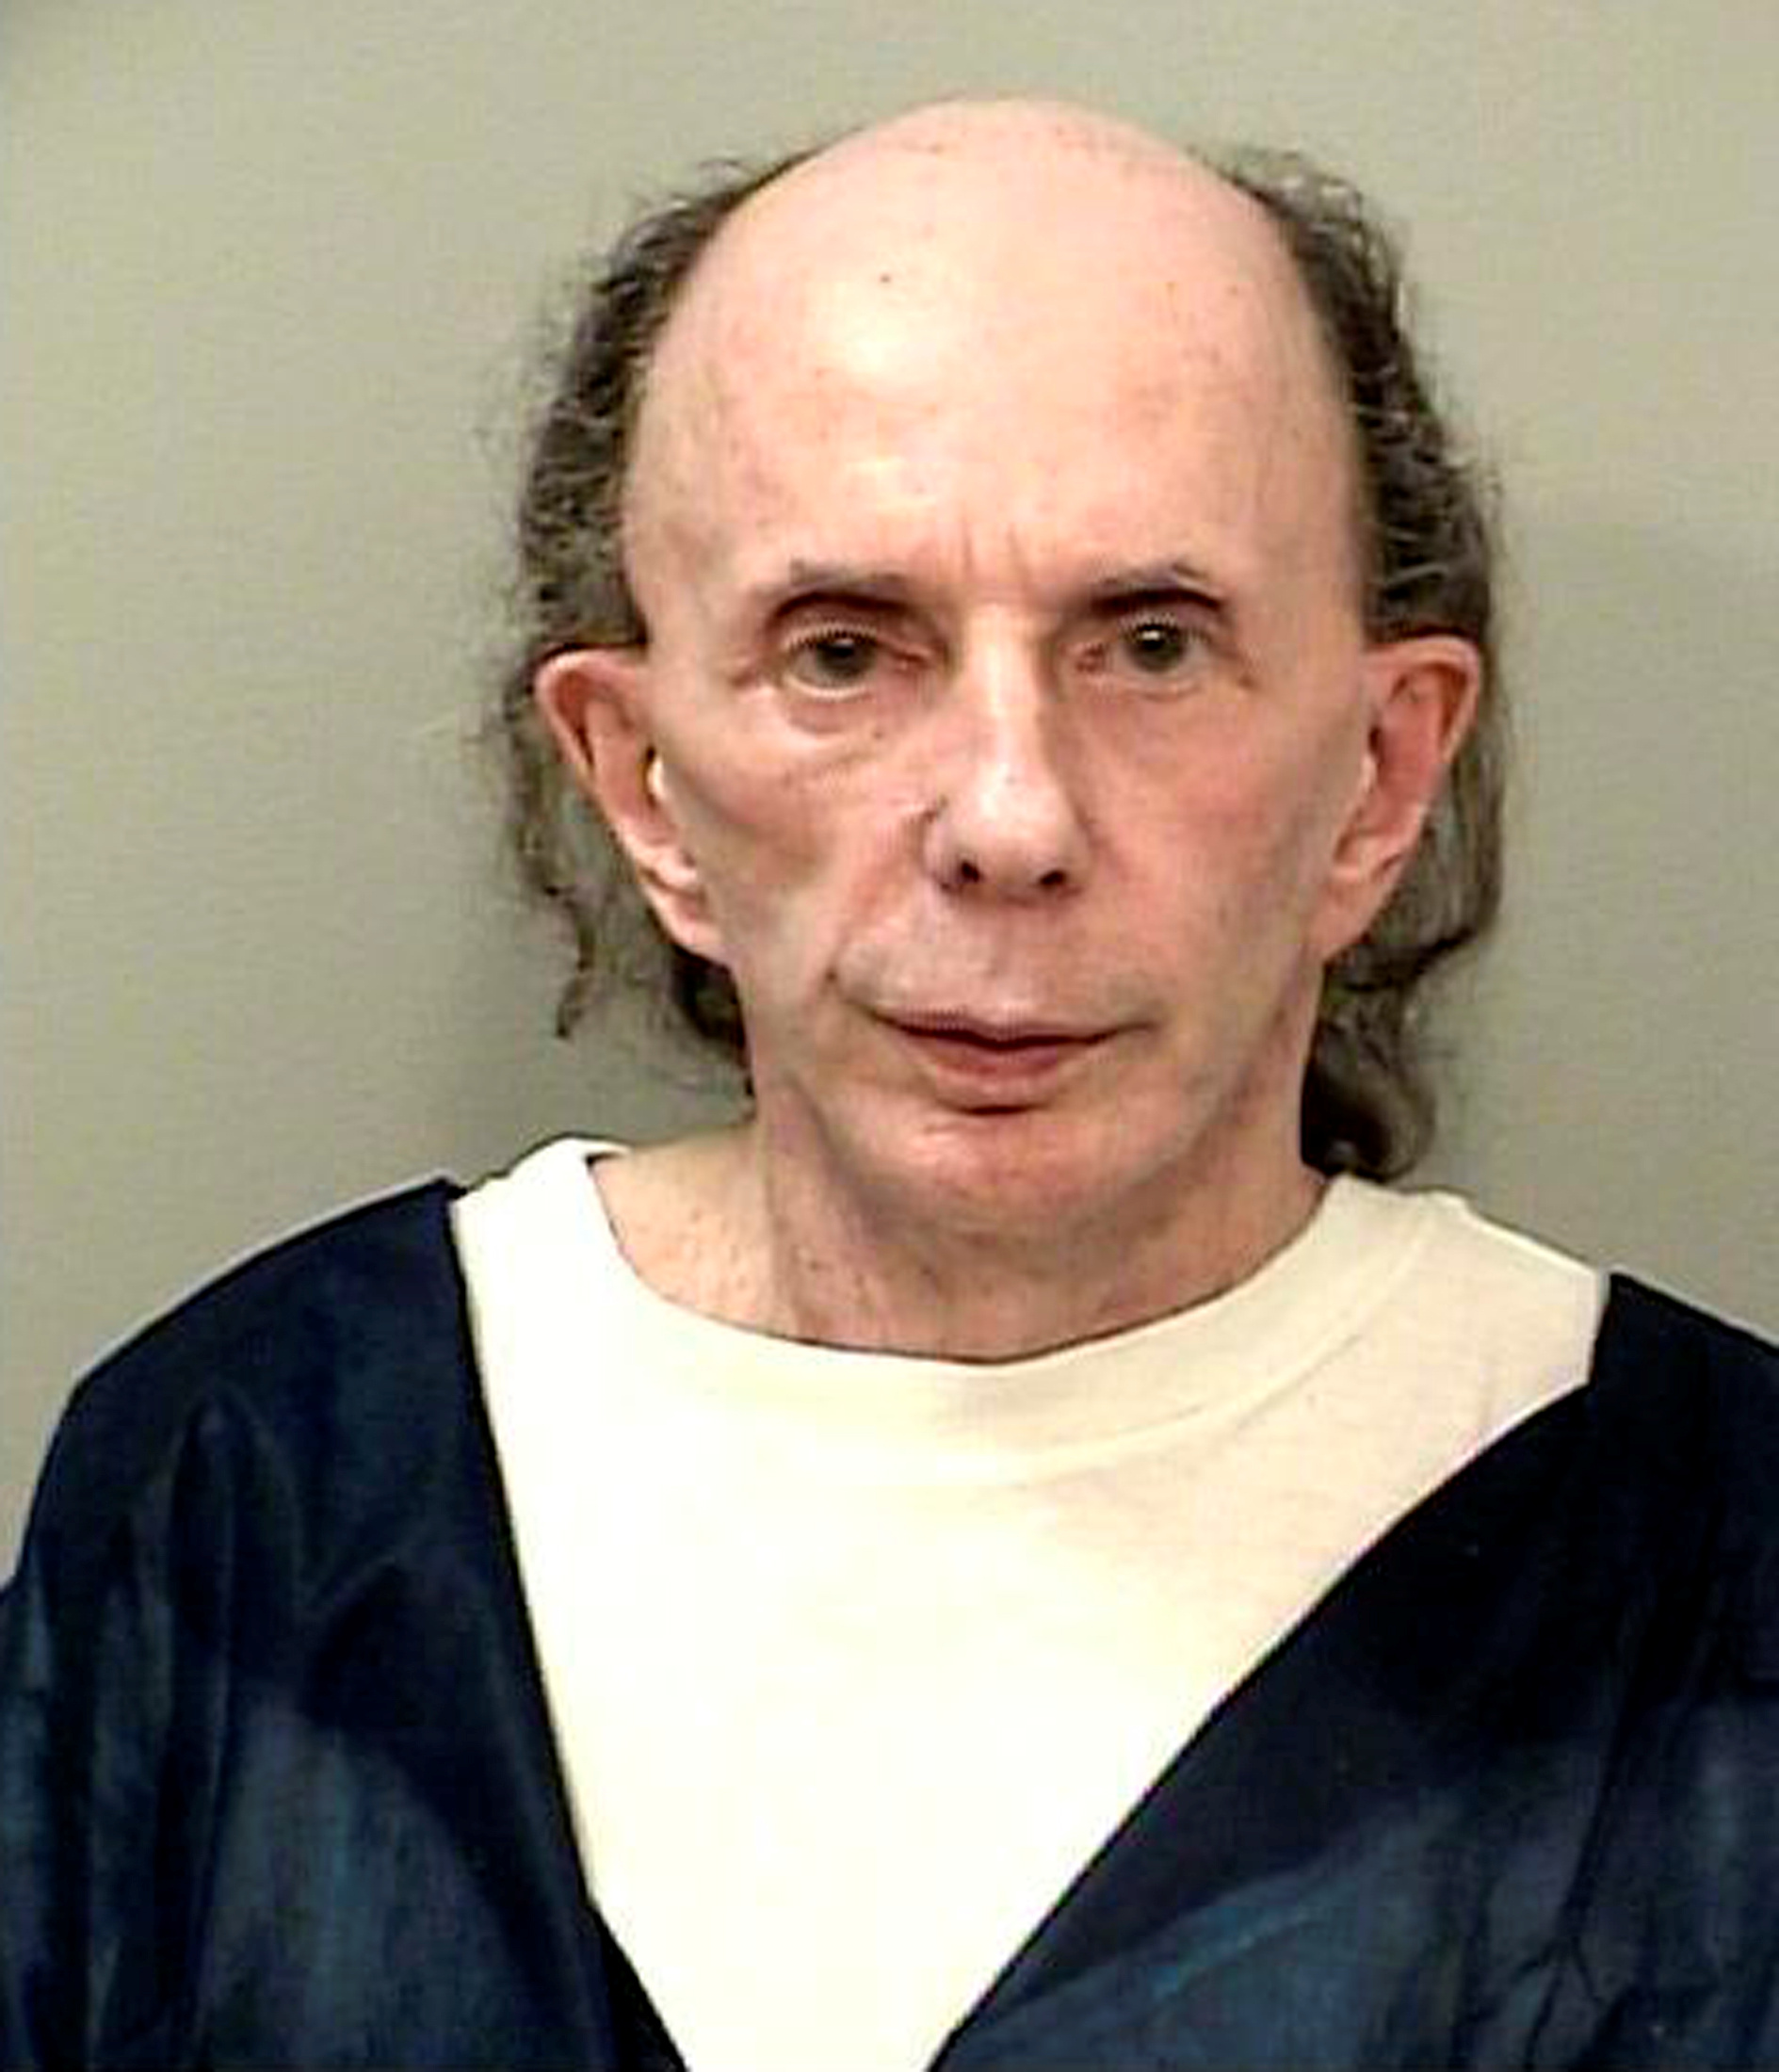 Music legend Phil Spector is seen in a picture taken October 28, 2013 released by the California Department of Corrections and Rehabilitation in Stockton, California.  REUTERS/California Department of Corrections and Rehabilitation/Handout via Reuters